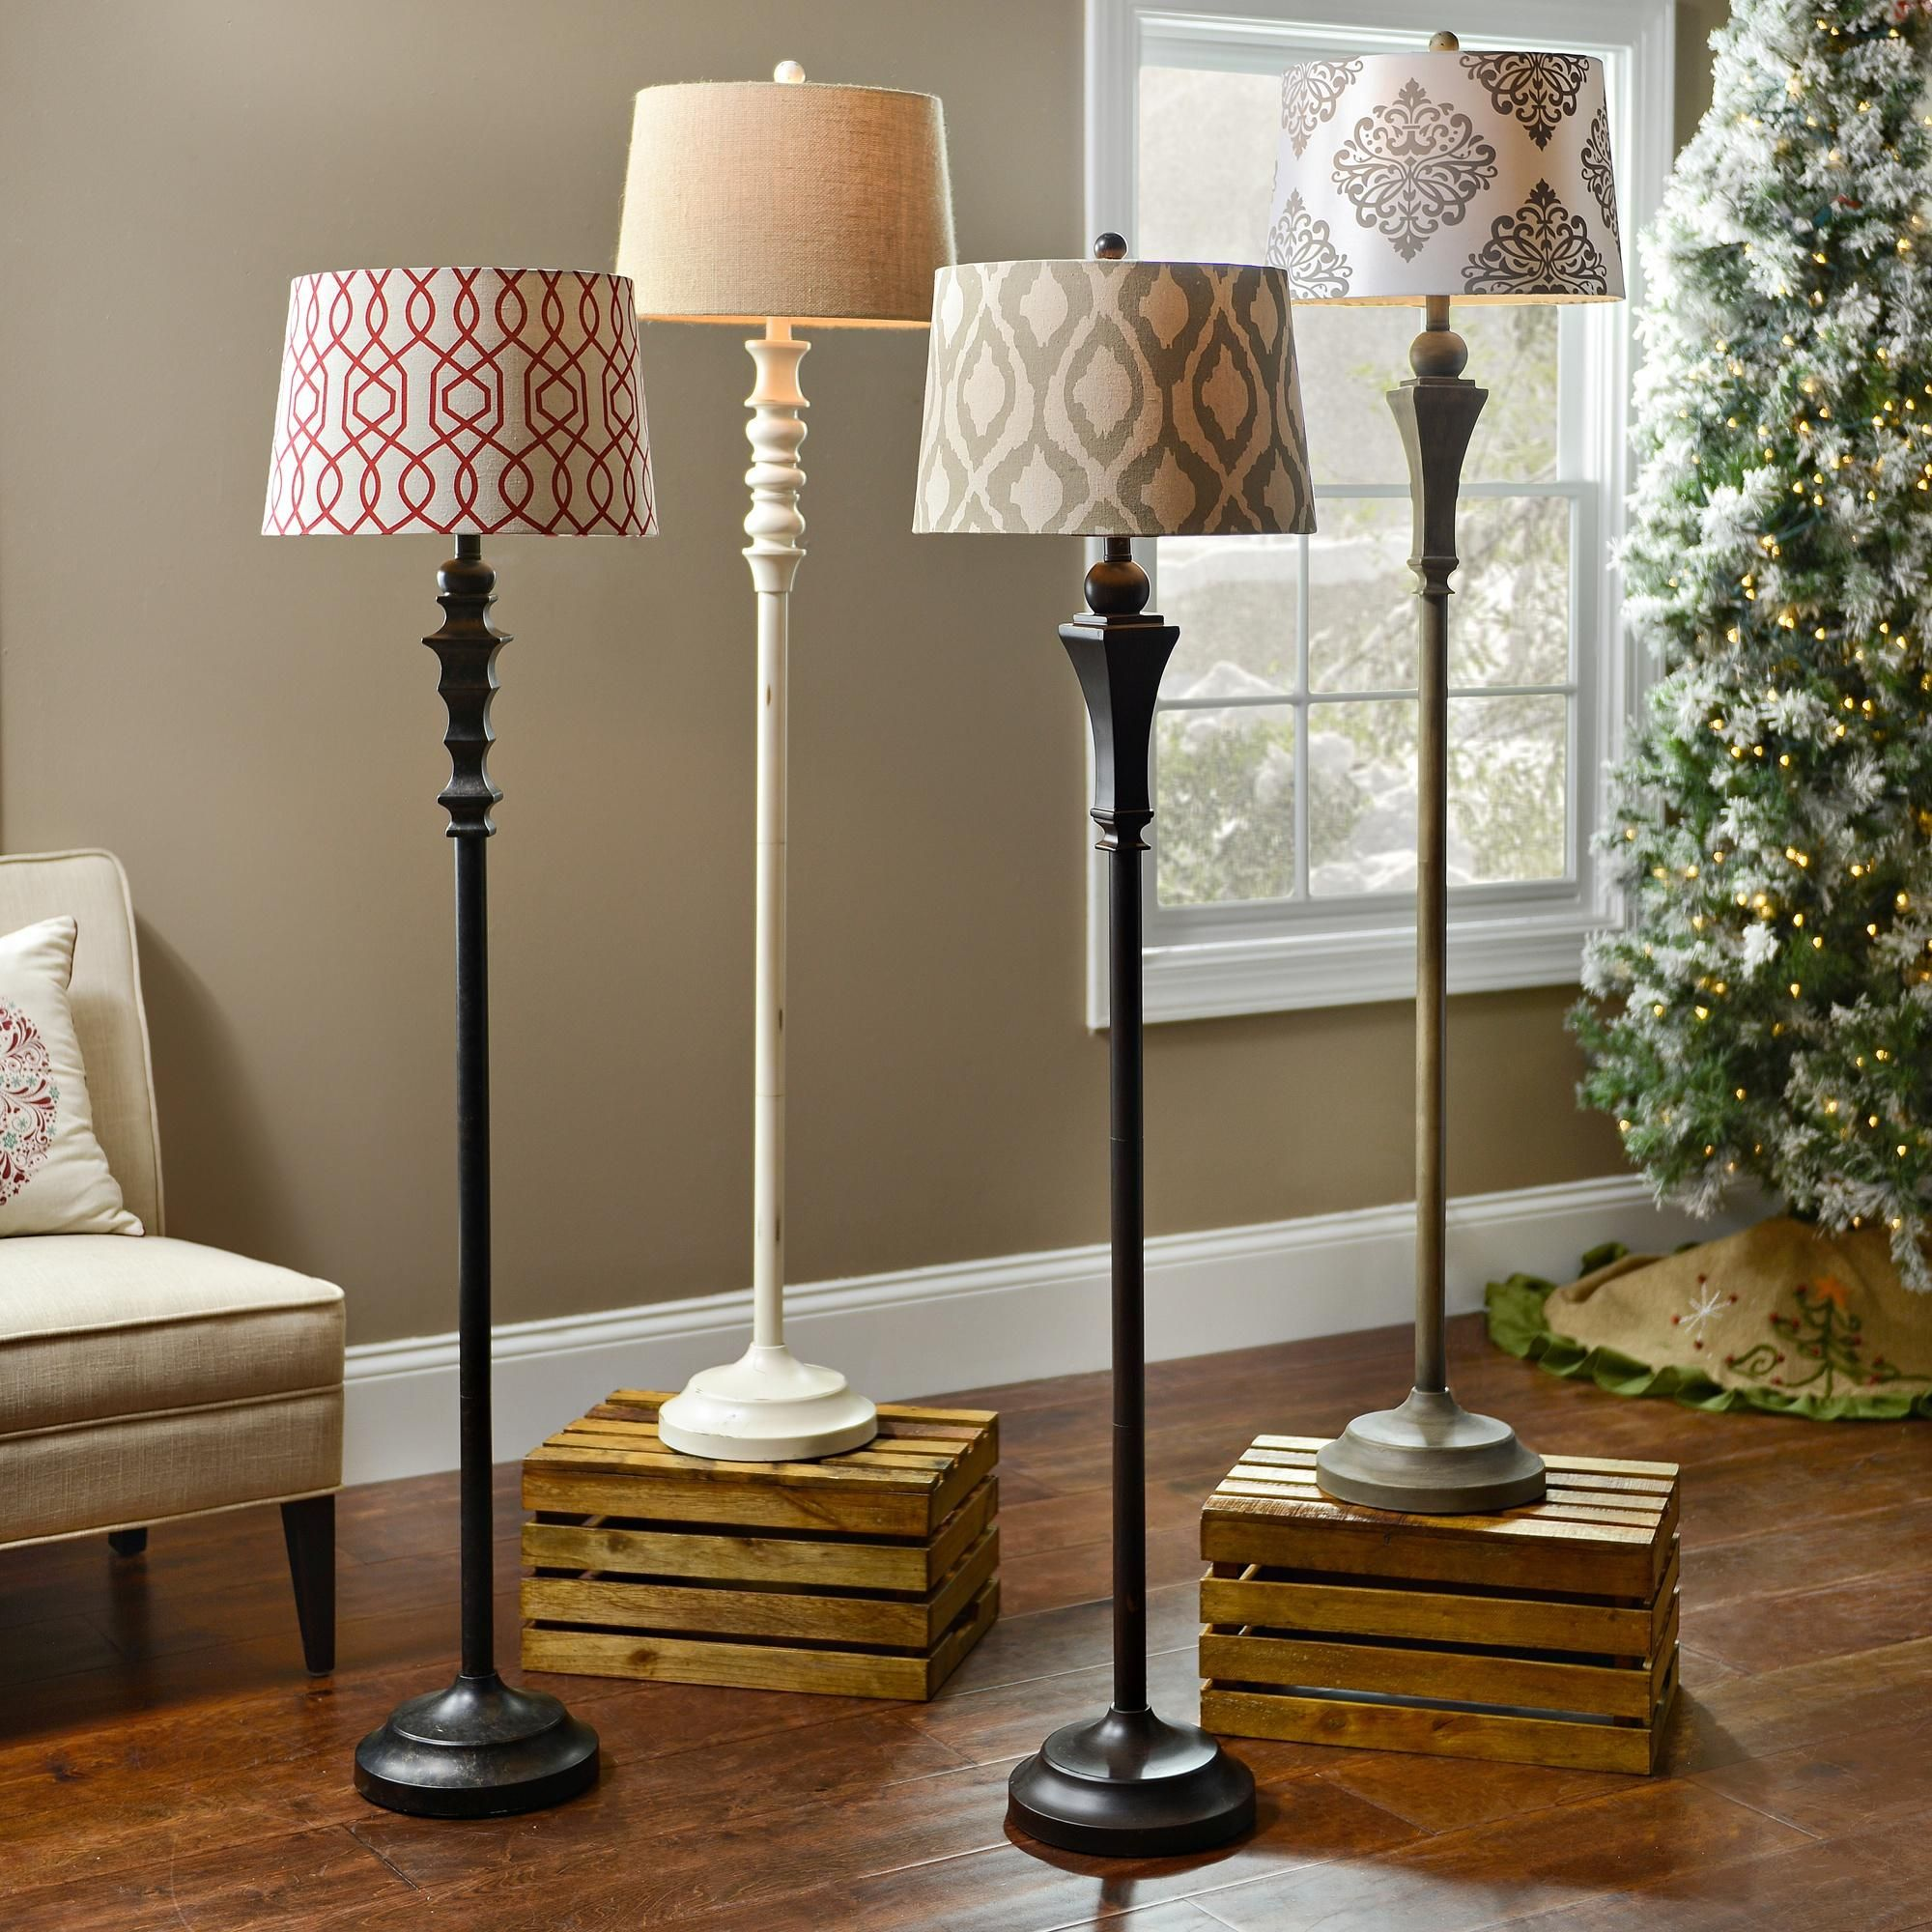 Kirklands Floor Lamps Bring Light And Style To Your Living Room With Stylish Floor Lamps